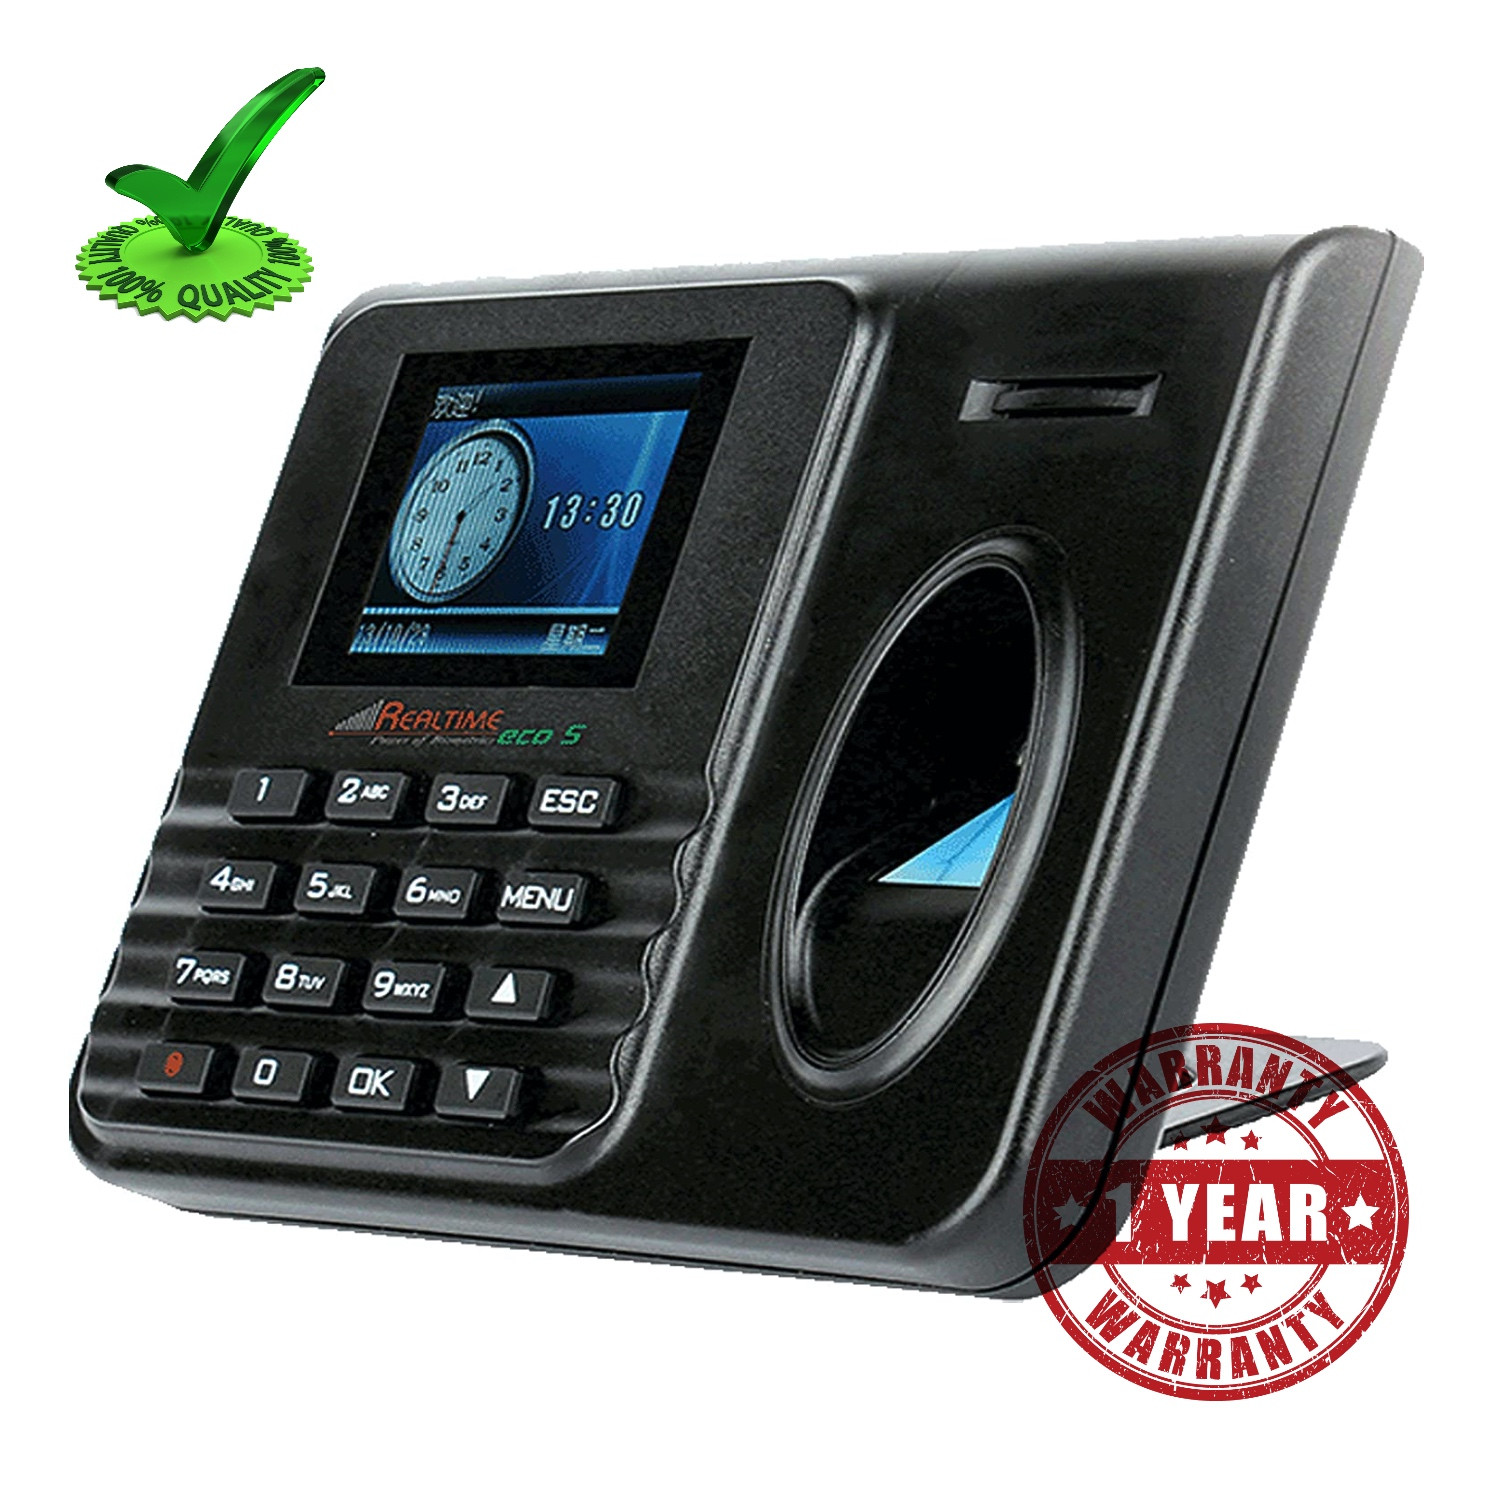 Realtime Eco S C101 Finger Print Time Attendance Systems